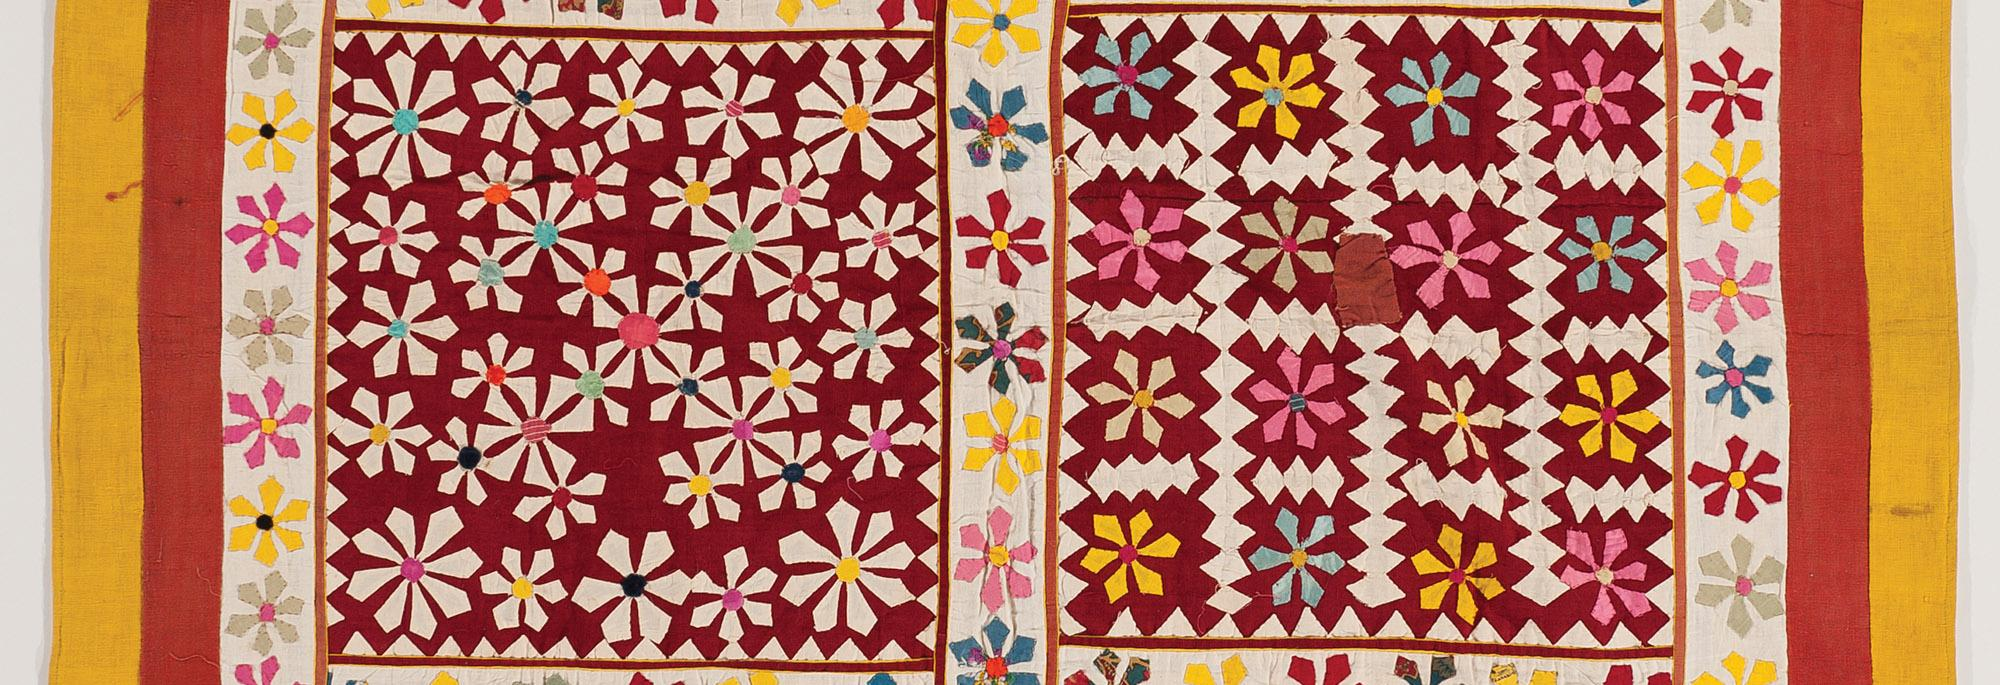 Applique - Southeast Asia Quilt